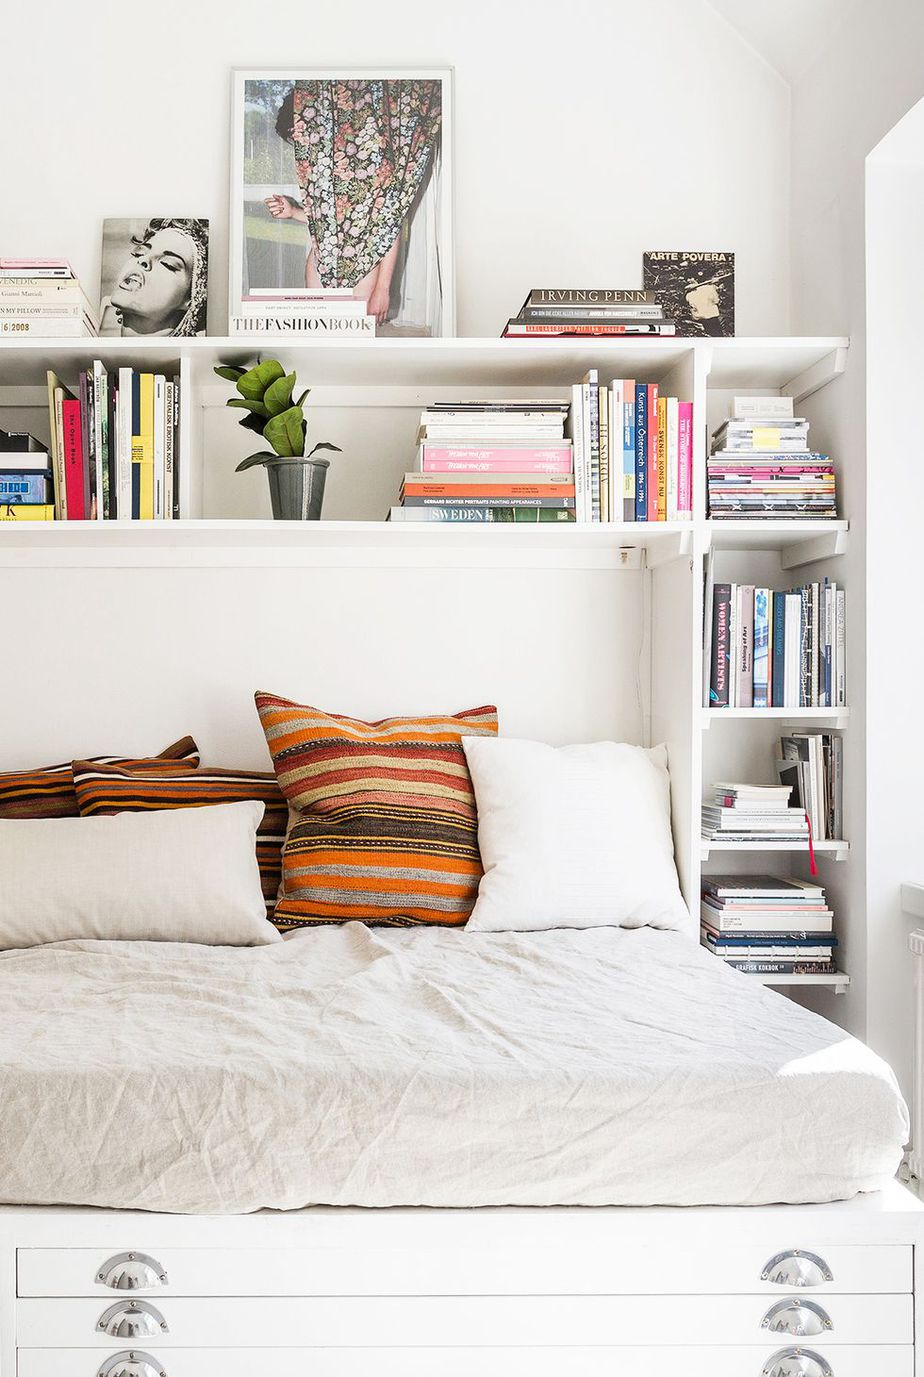 5.Swap the Nightstand for Floating Shelves via Simphome.com